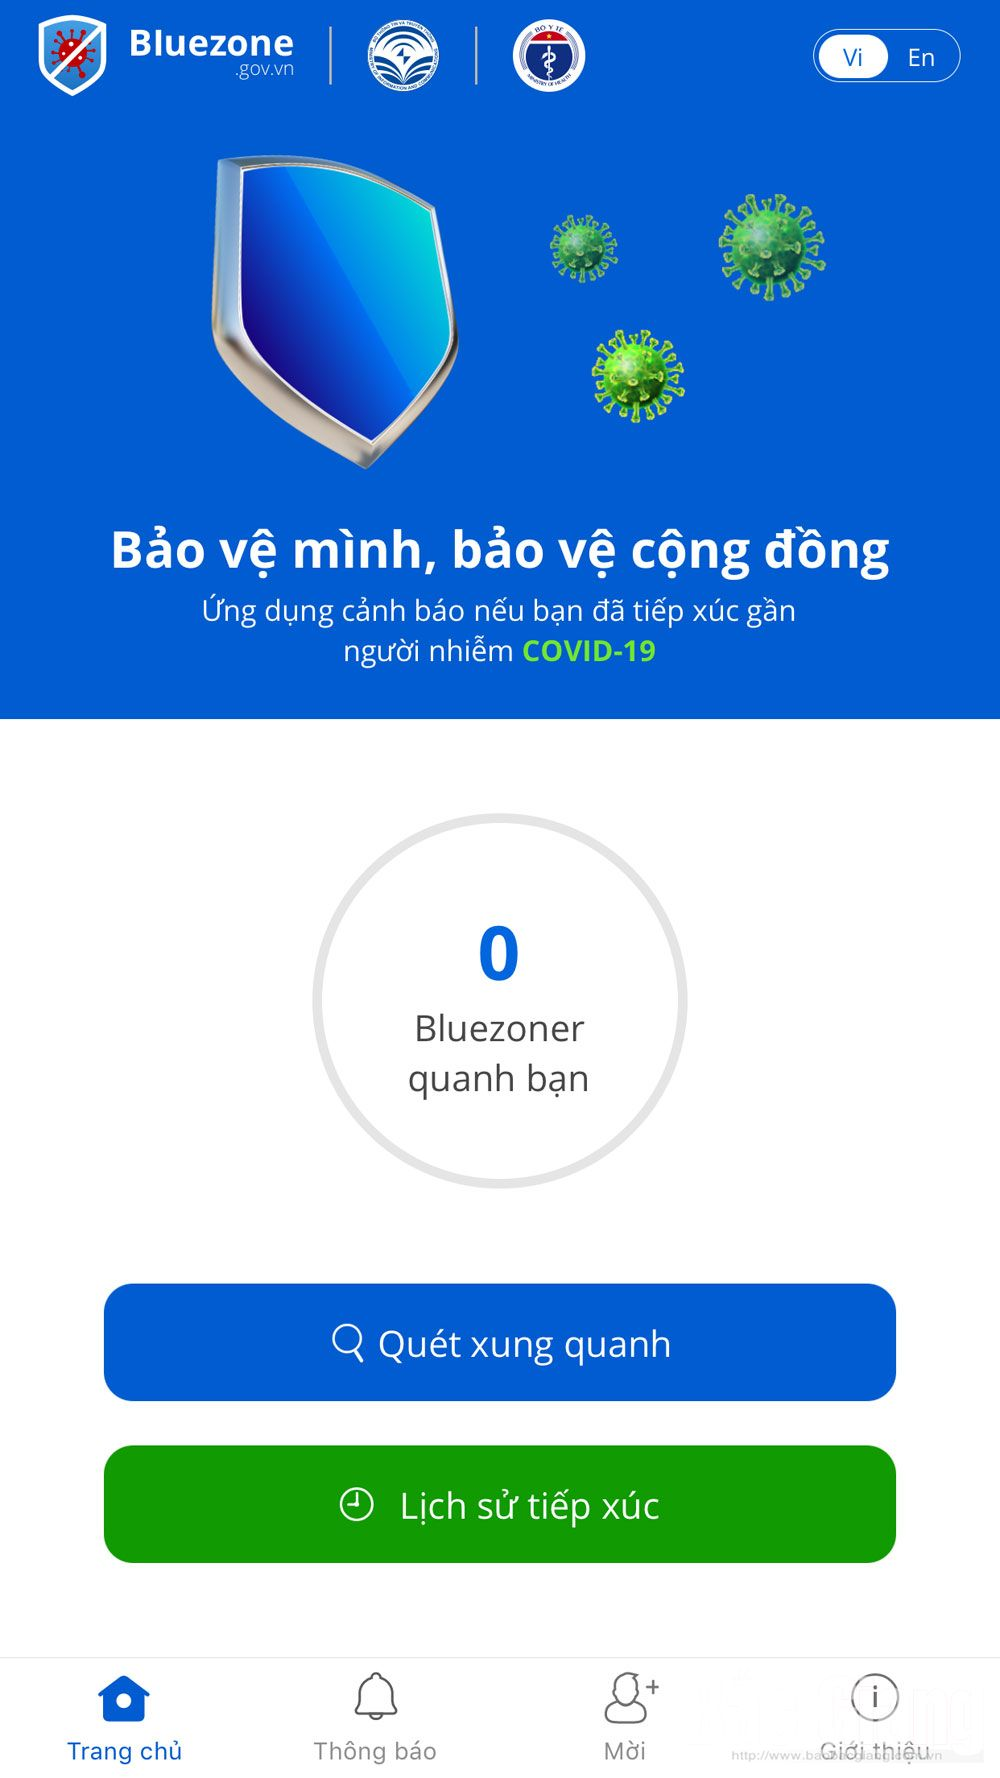 Bac Giang province, Bluezone App, Covid-19 pandemic, close contact, infected persons, smart phones, spread of the virus, prevention and control